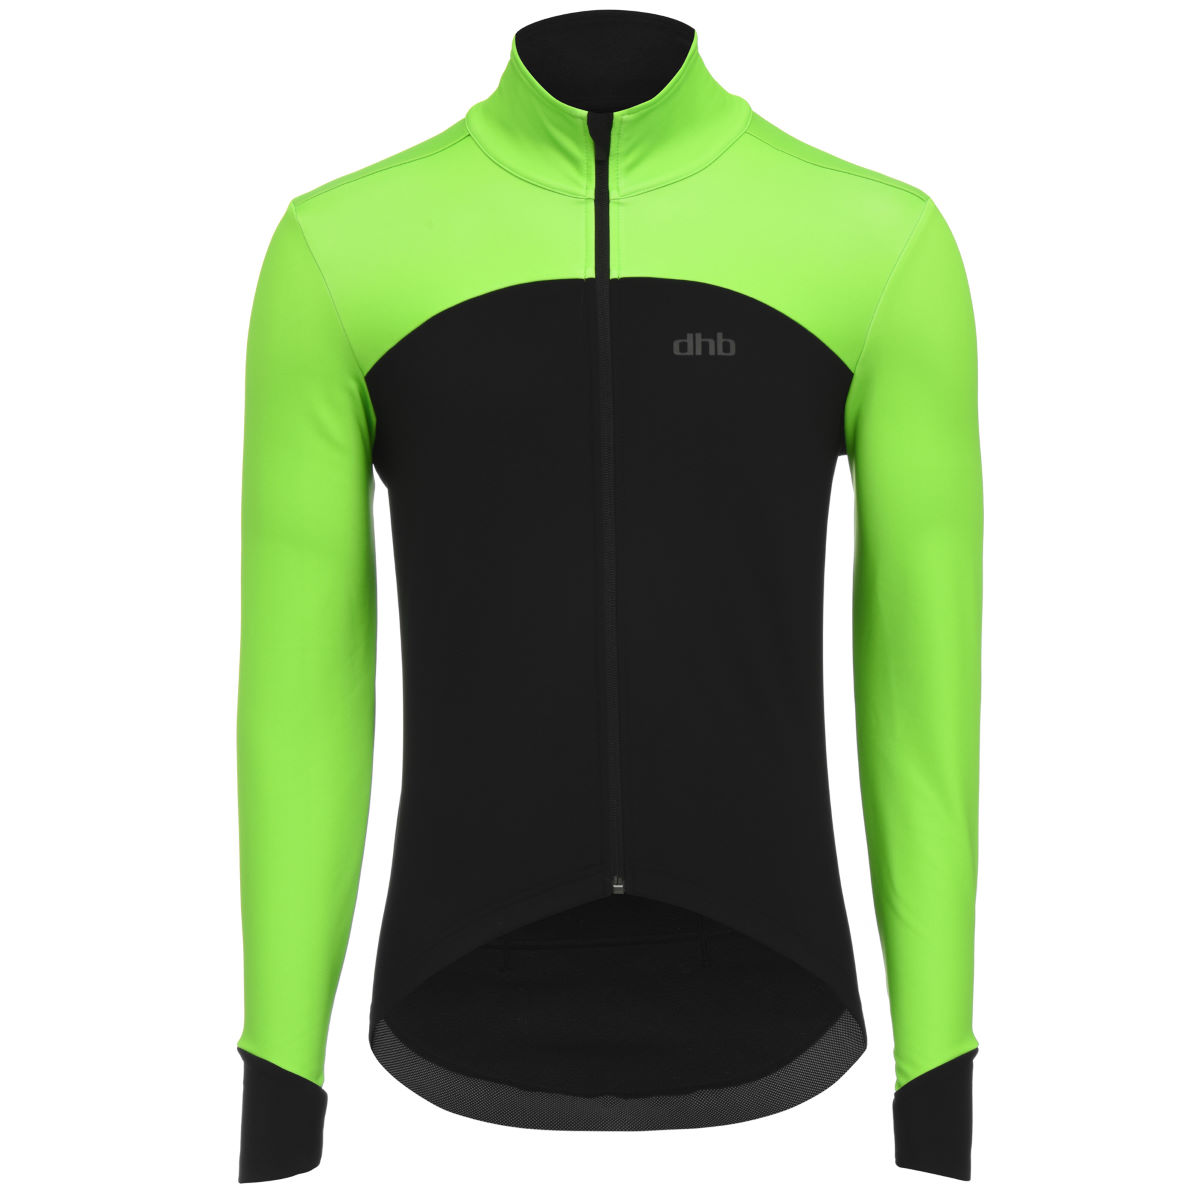 Chaqueta dhb Aeron Full Protection Softshell - Chaquetas